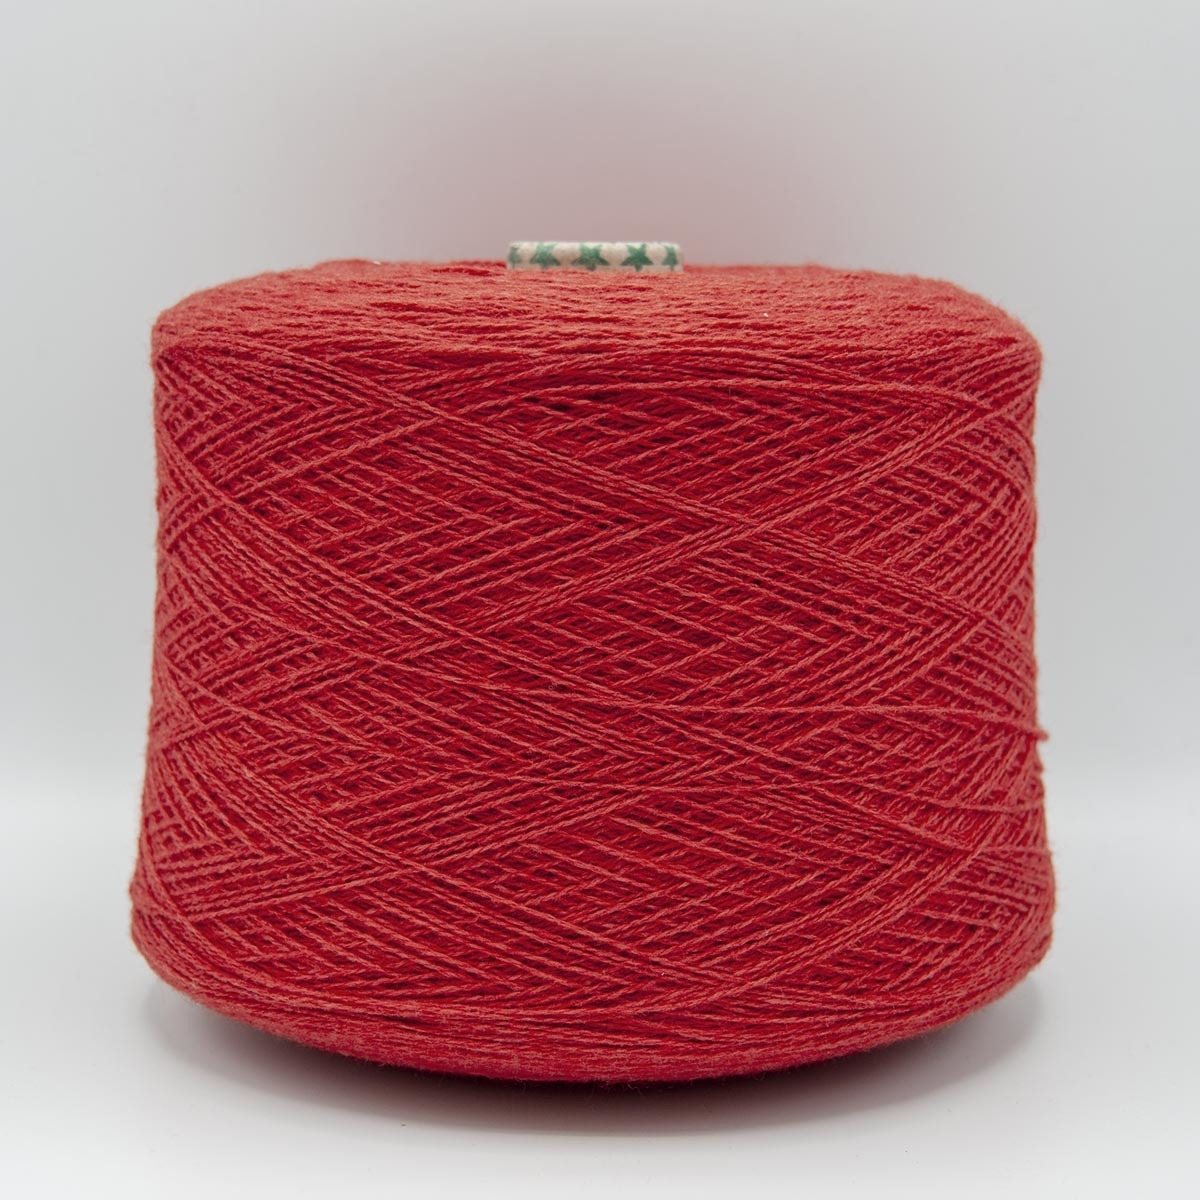 Knoll Yarns Coast - 123